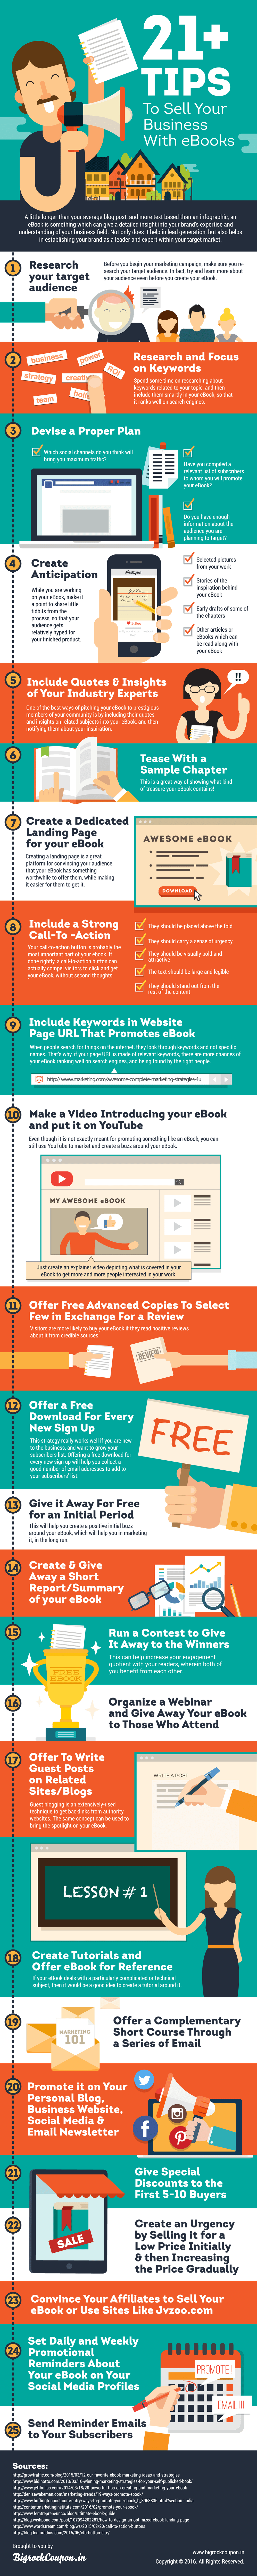 How to Enrich Your Online Marketing Program with eBooks - Infographic